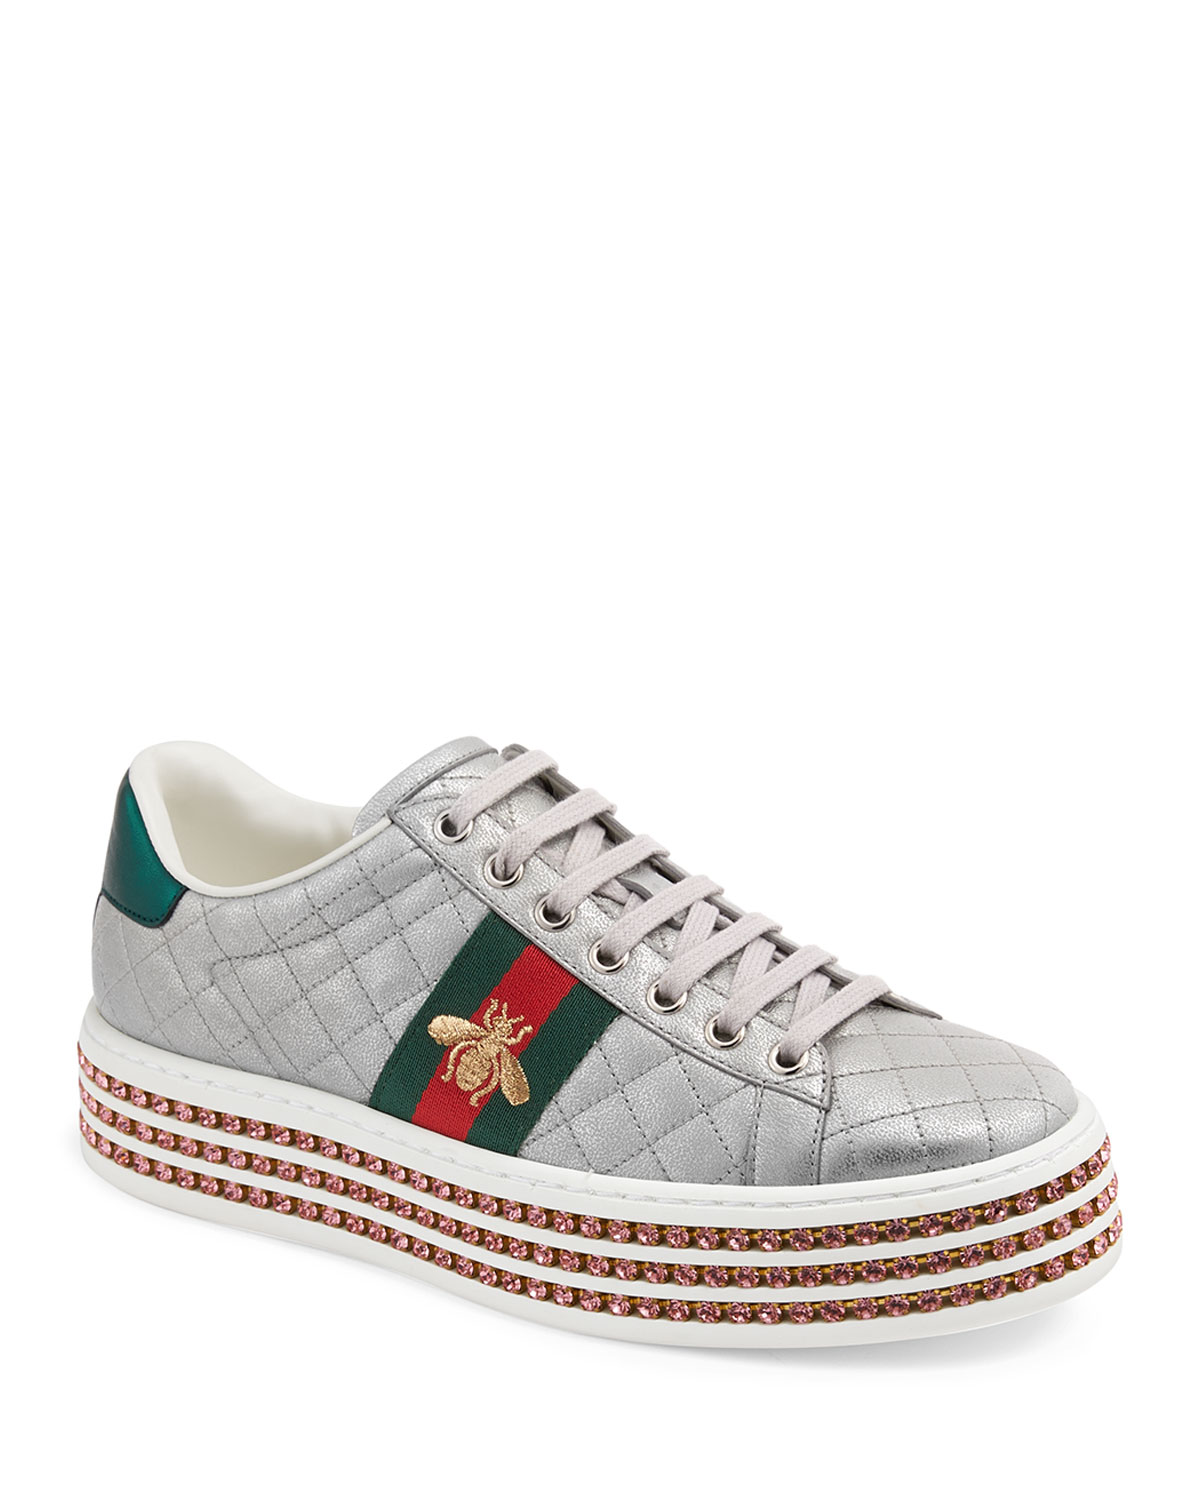 2b3088f3d2a Gucci Quilted Crystal-Platform Sneakers